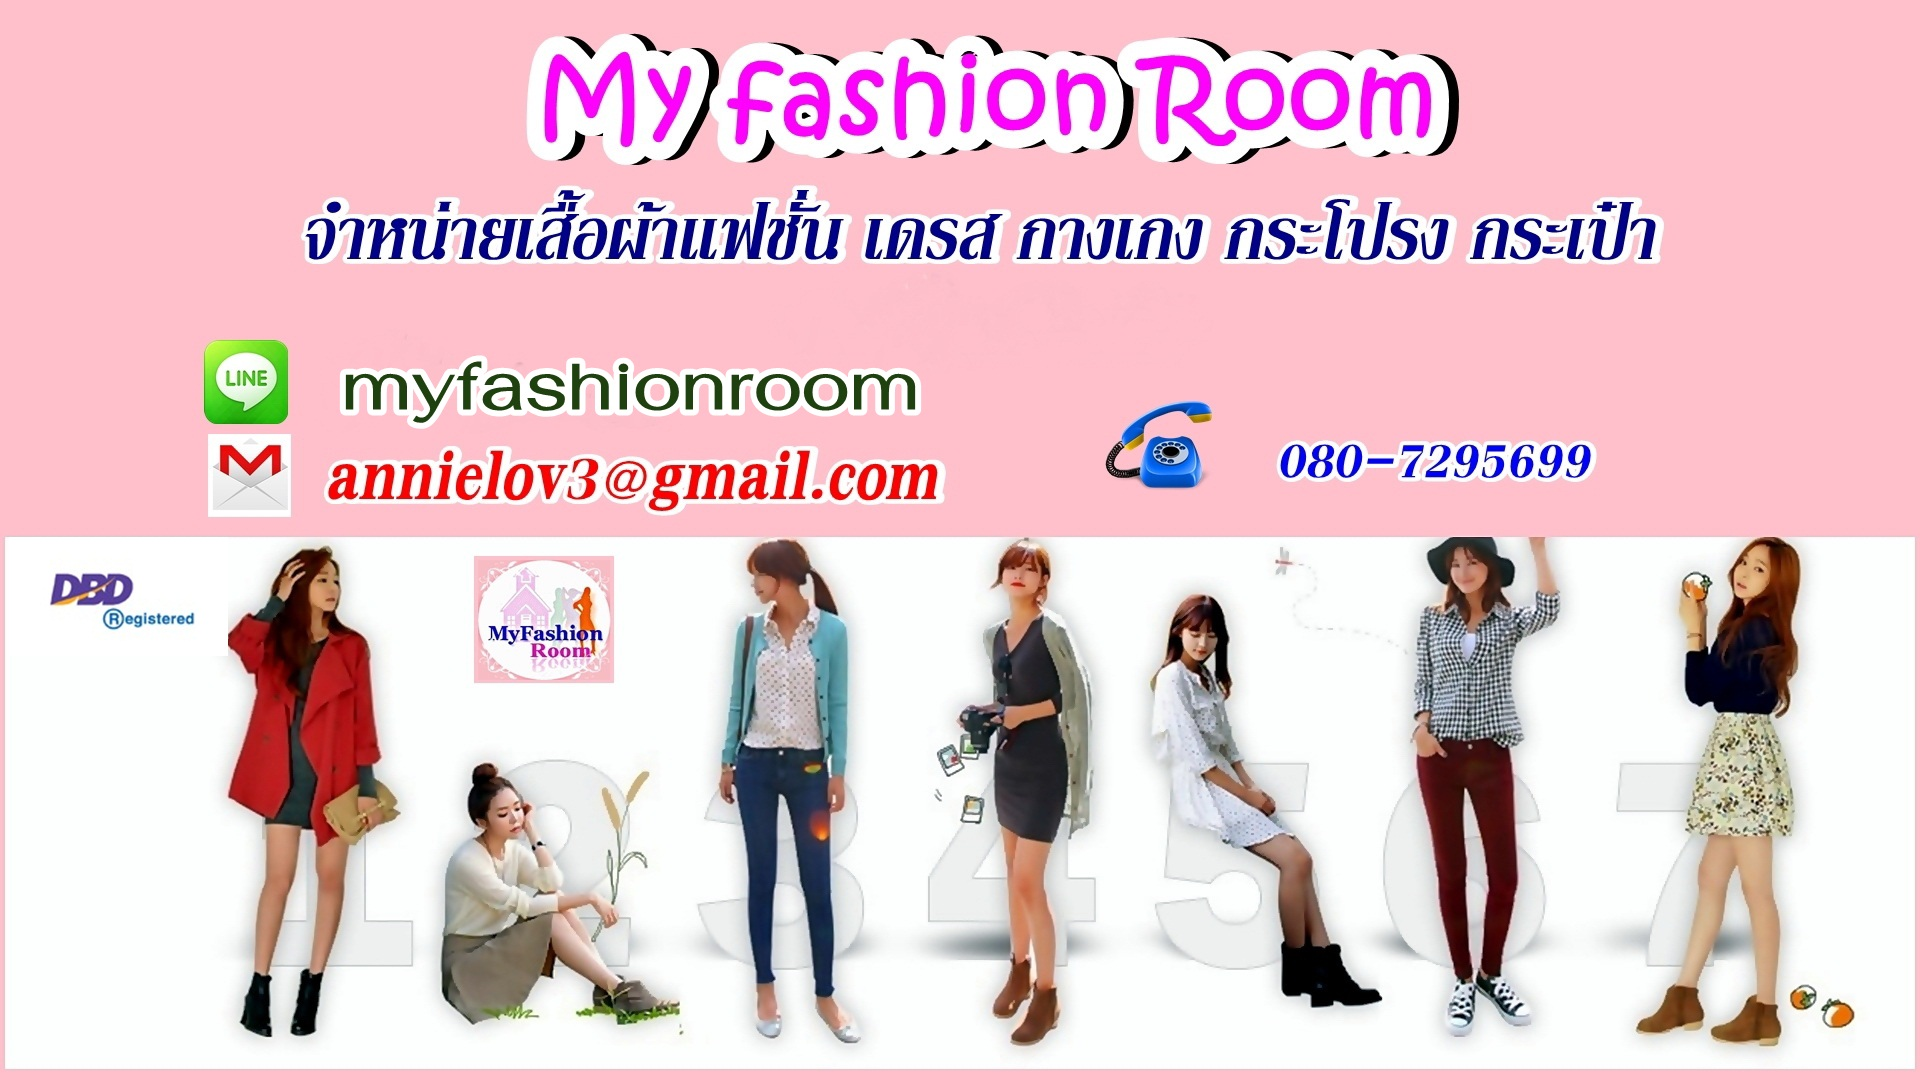 Myfashion Room